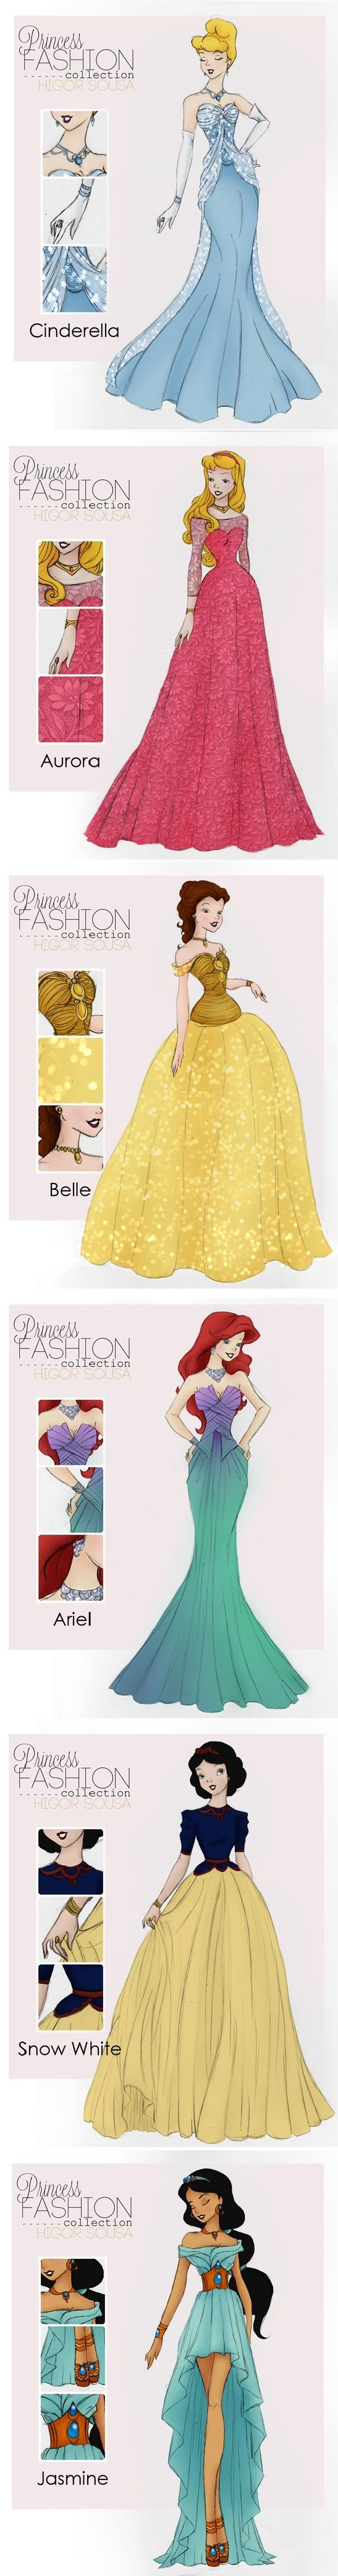 Disney designer princess collection modern.